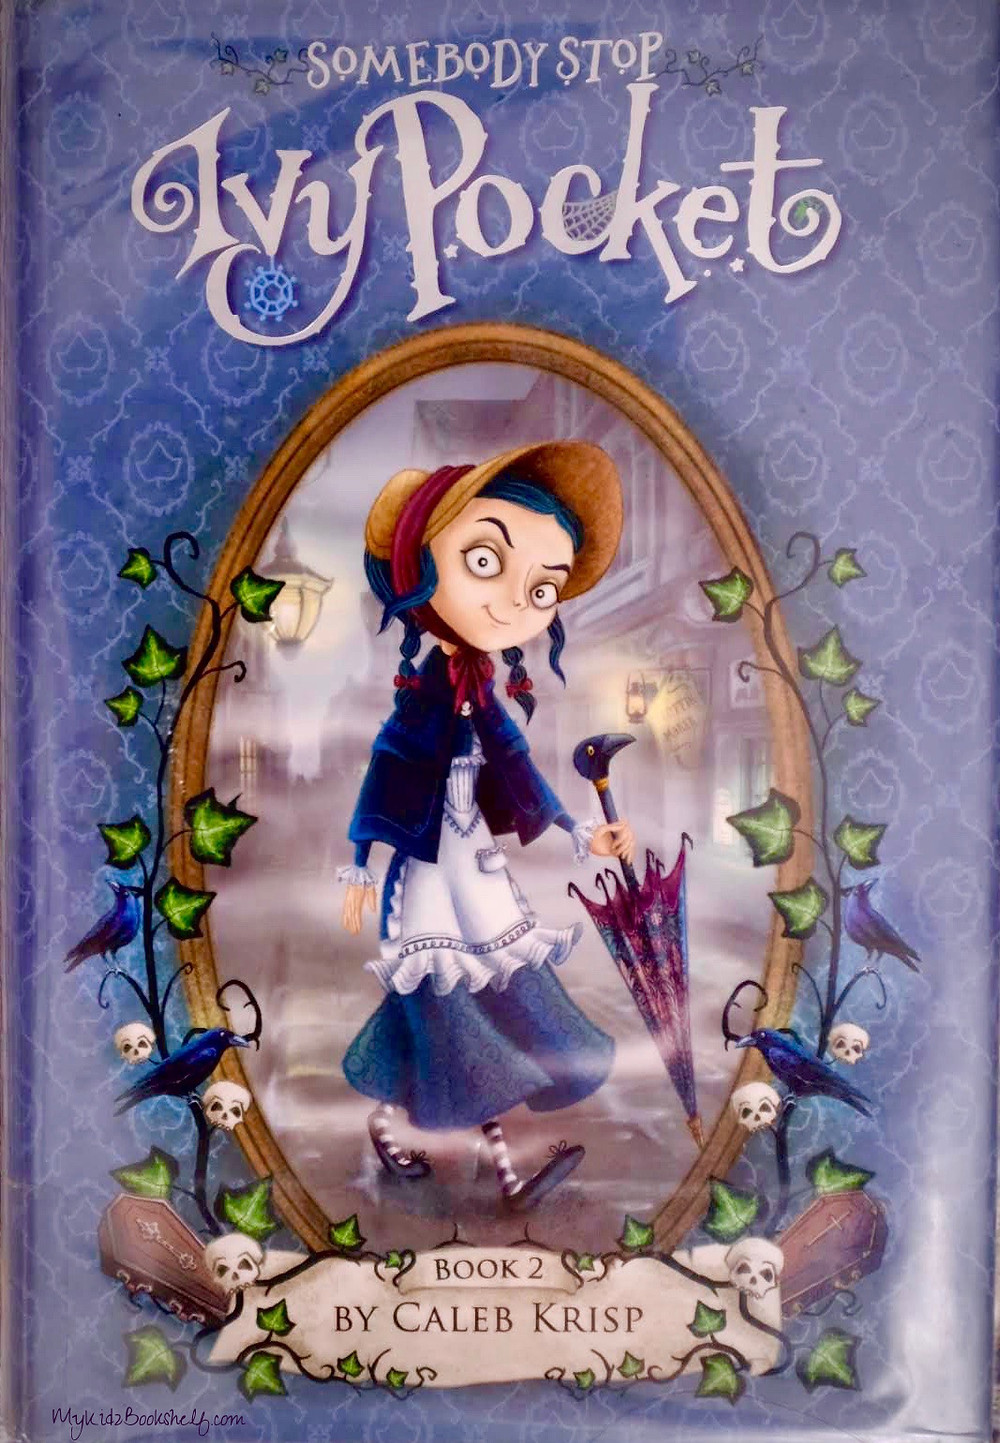 bookcover of Somebody Stop Ivy Pocket by Caleb Krisp shows girl in bonnett holding an umbrella